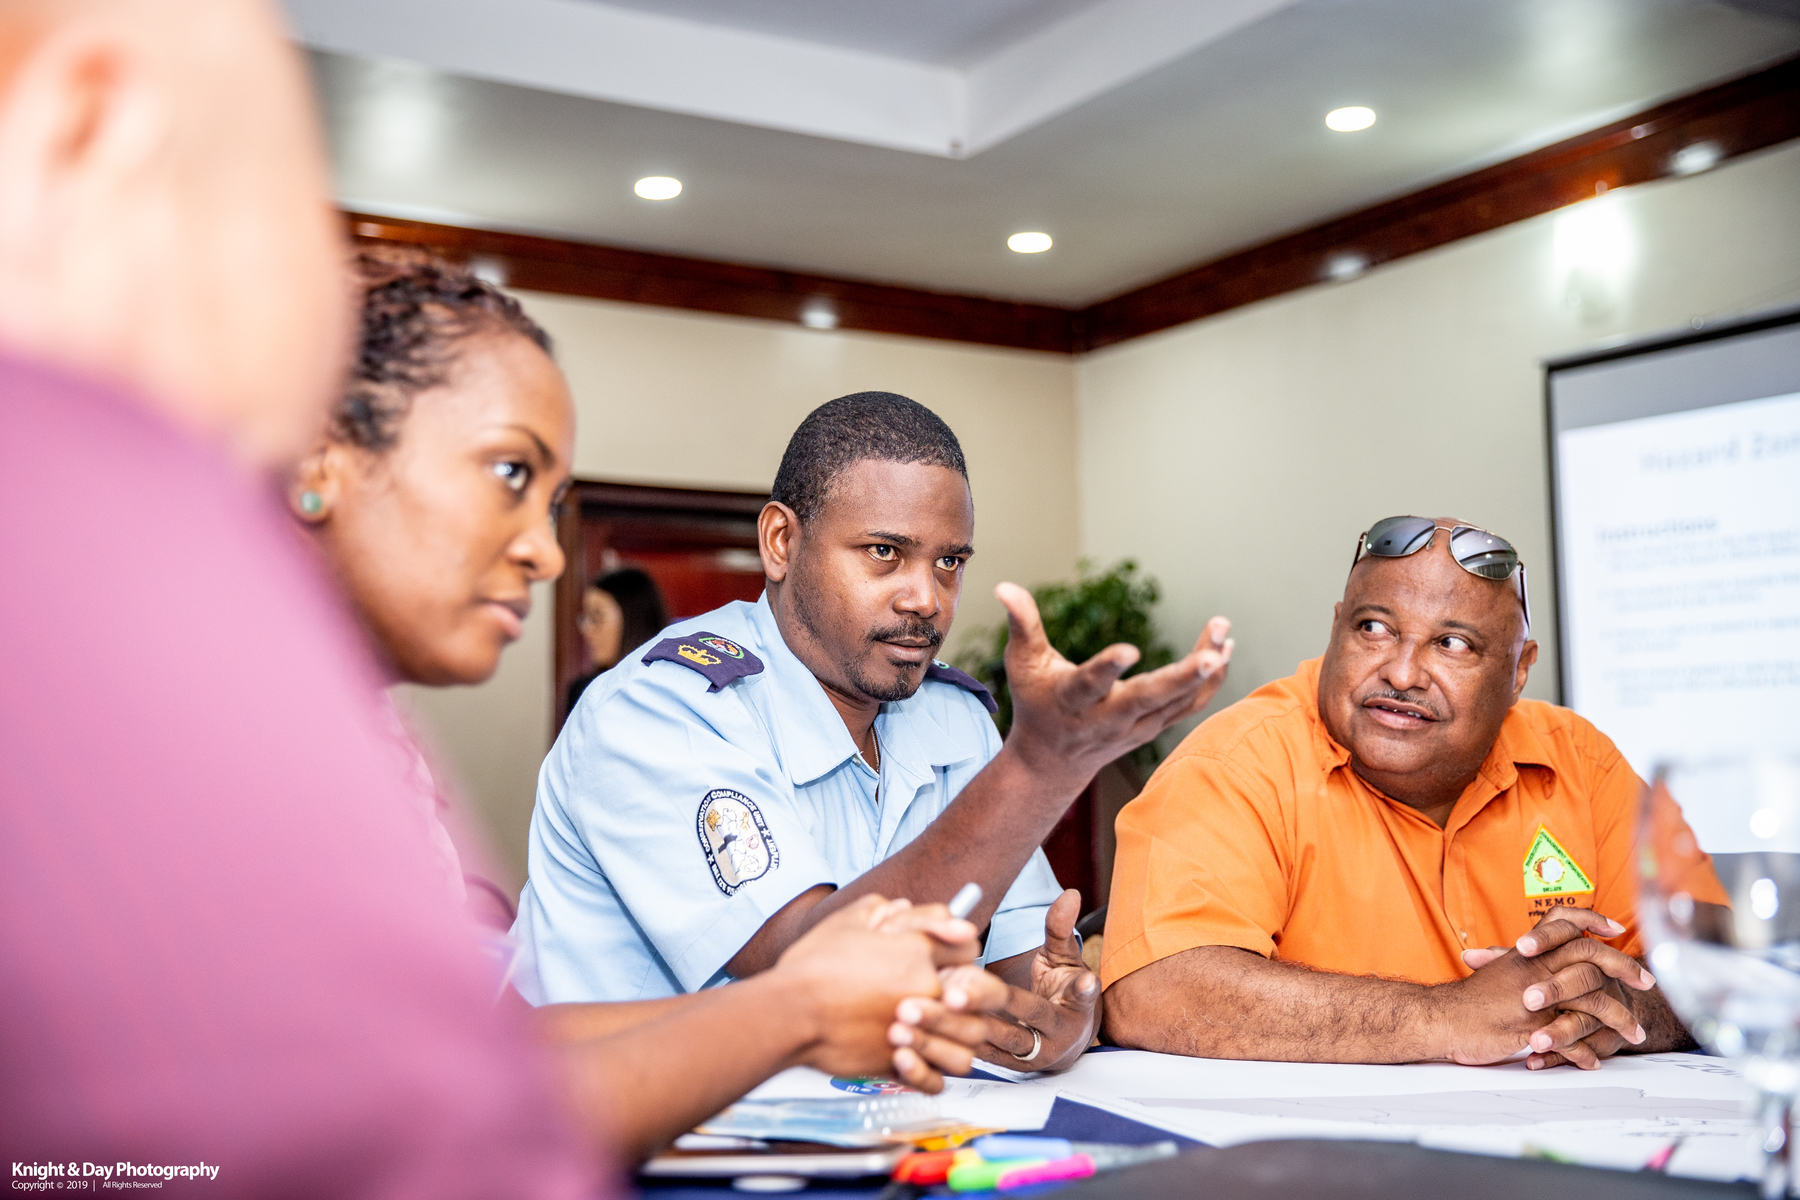 Belize, a worldwide vacation destination, assesses disaster preparedness and sustainability